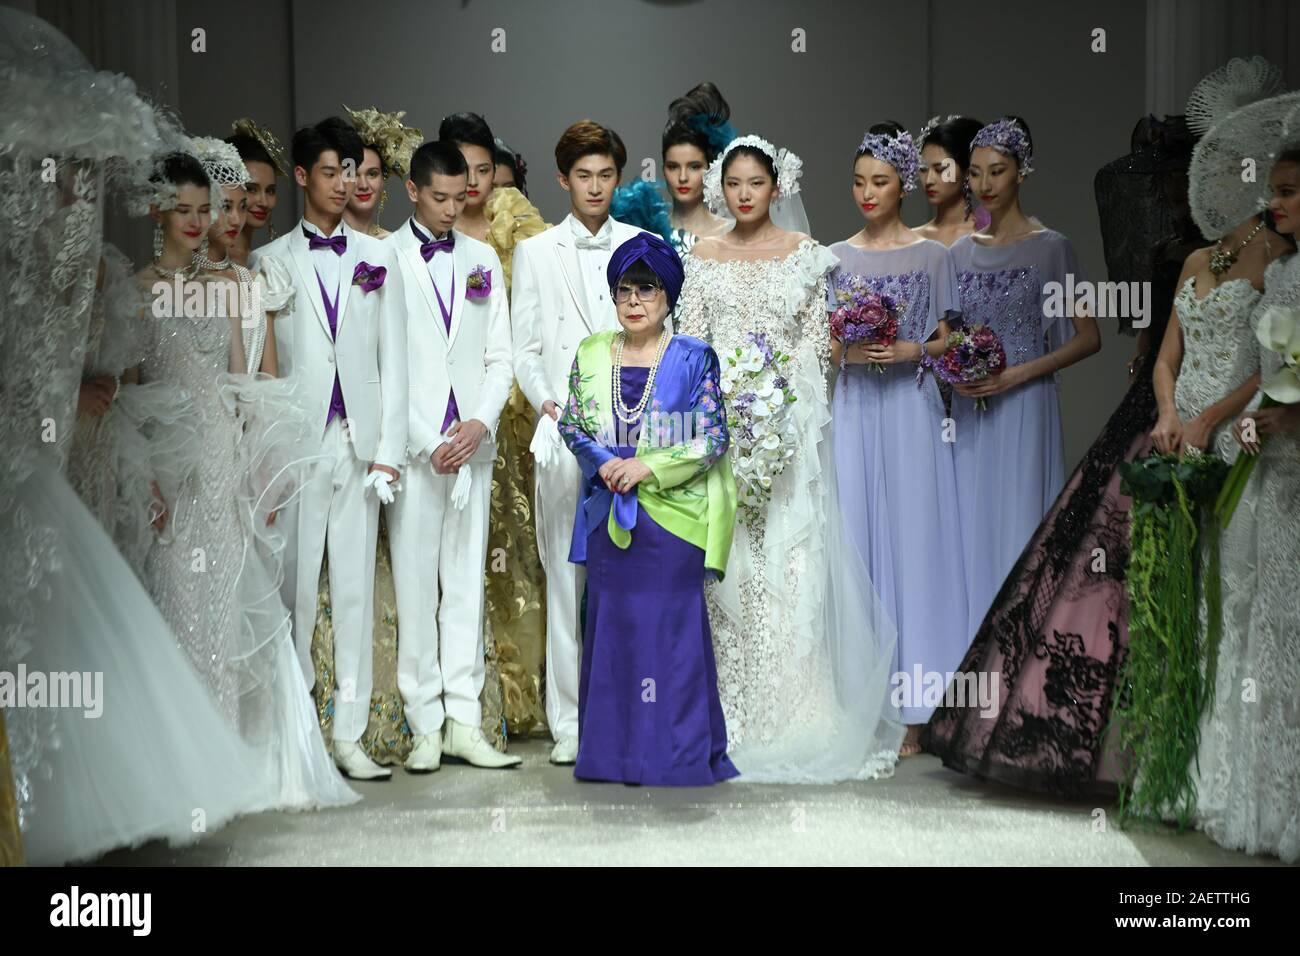 Models And Designer Yumi Katsura Purple Thank The Audience After The Fashion Show In Jinan City East China S Shandong Province 22 November 2019 Stock Photo Alamy